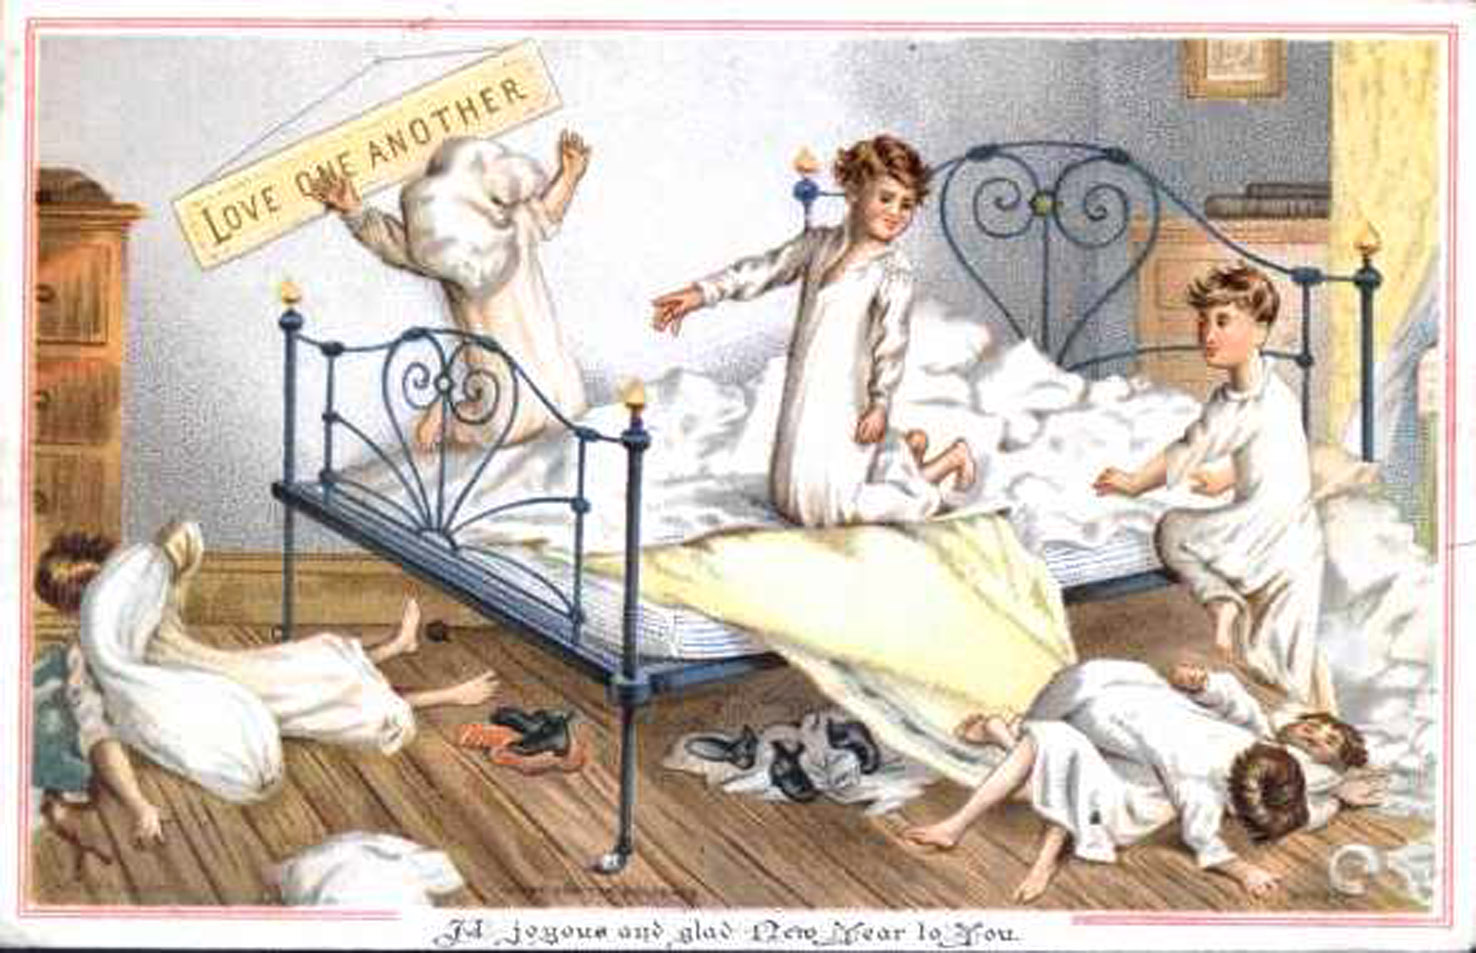 Boys in bedroom 1881 - No 03 in series of four amusing vintage Christmas cards